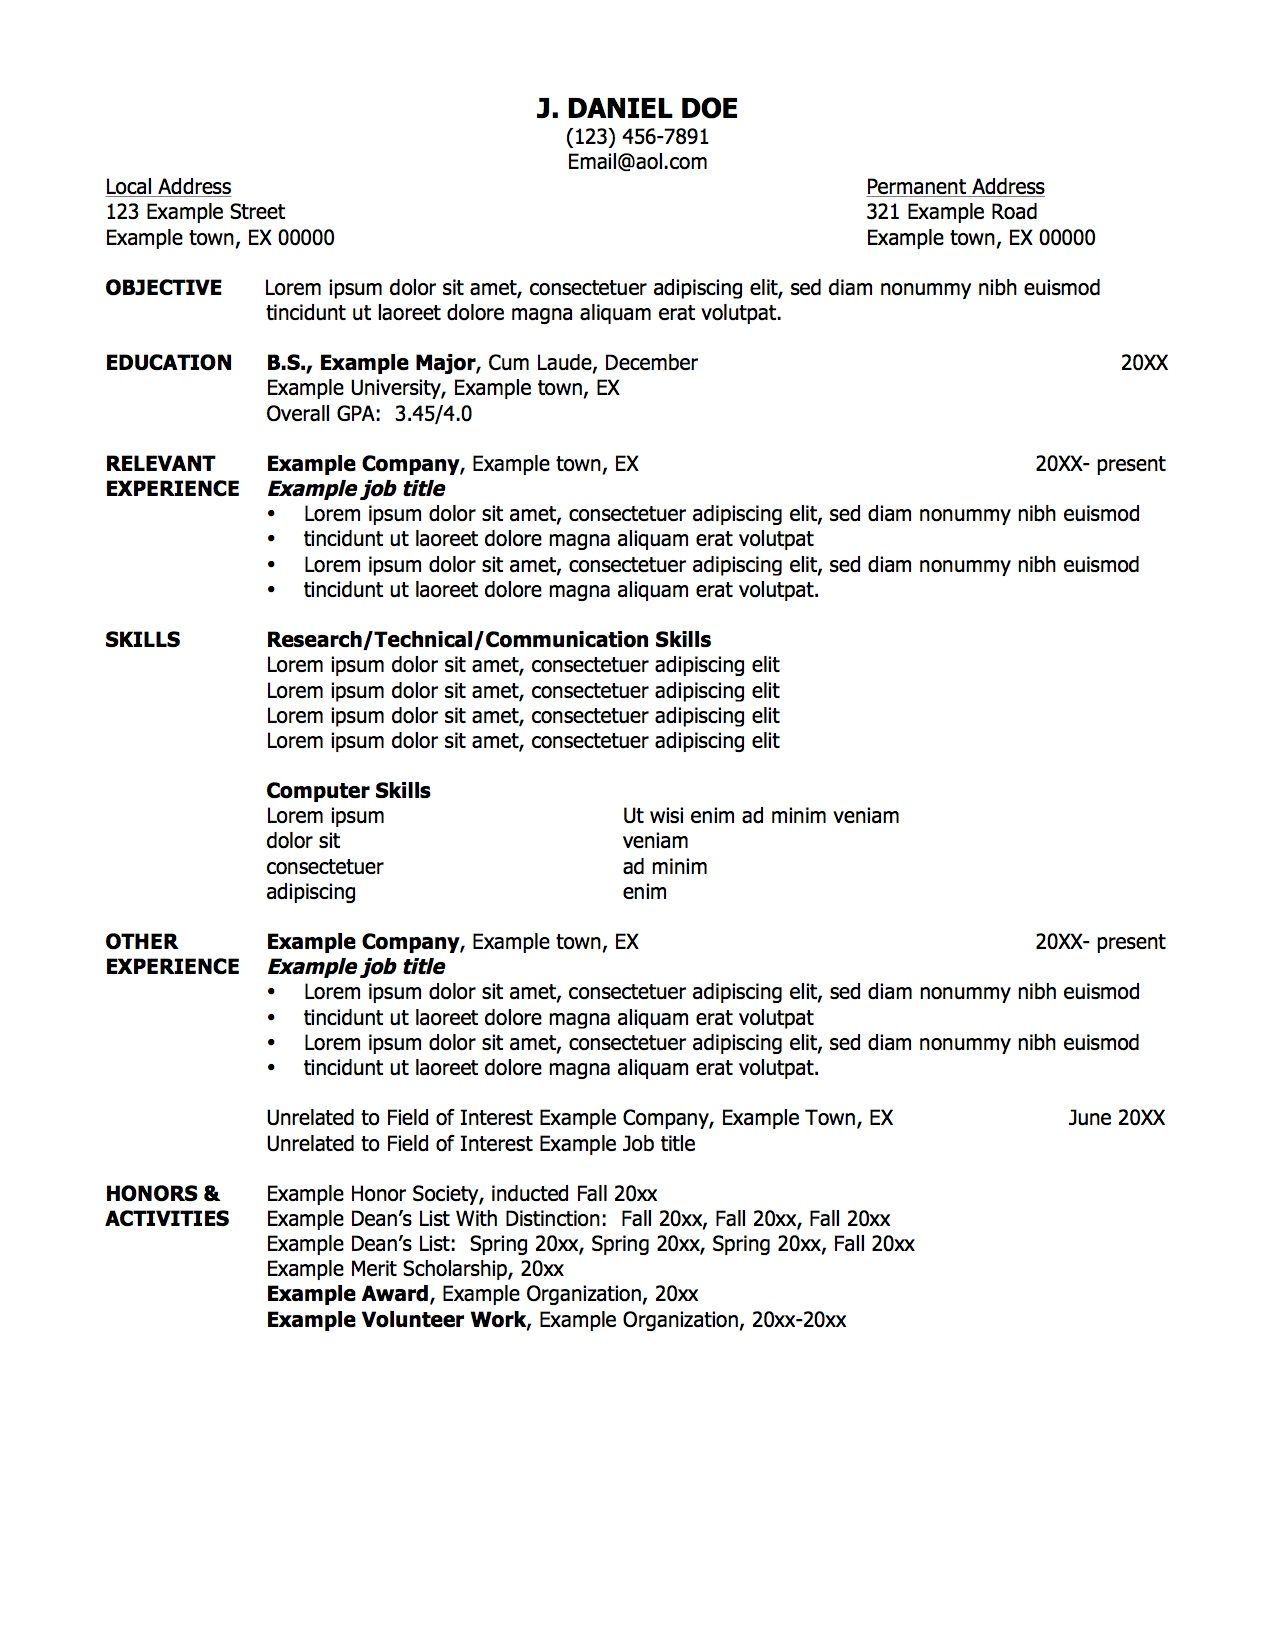 custom resume writing for job